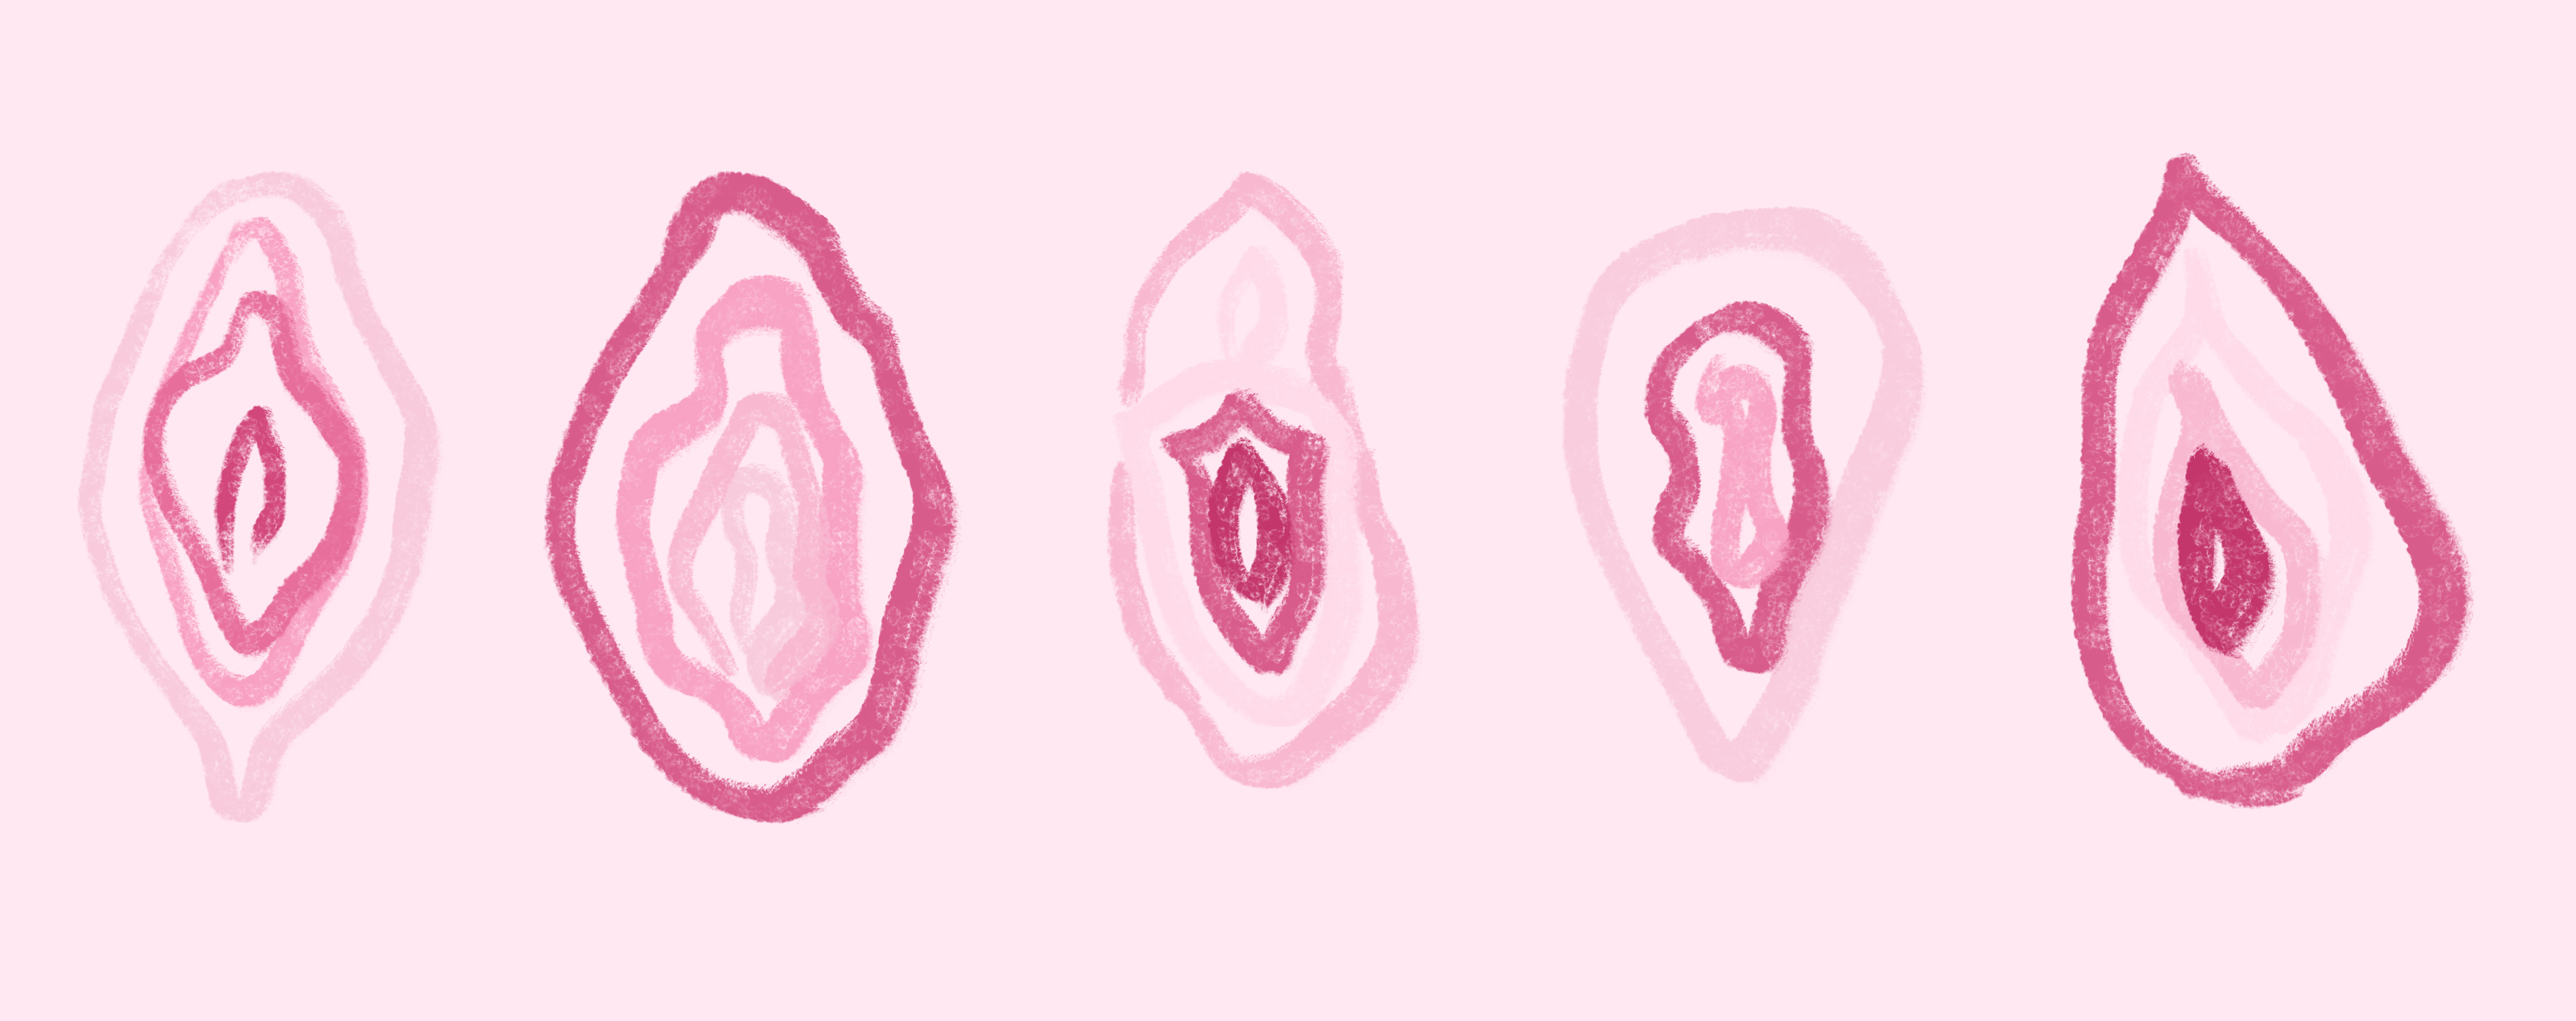 Vaginas Blog Post Illustration